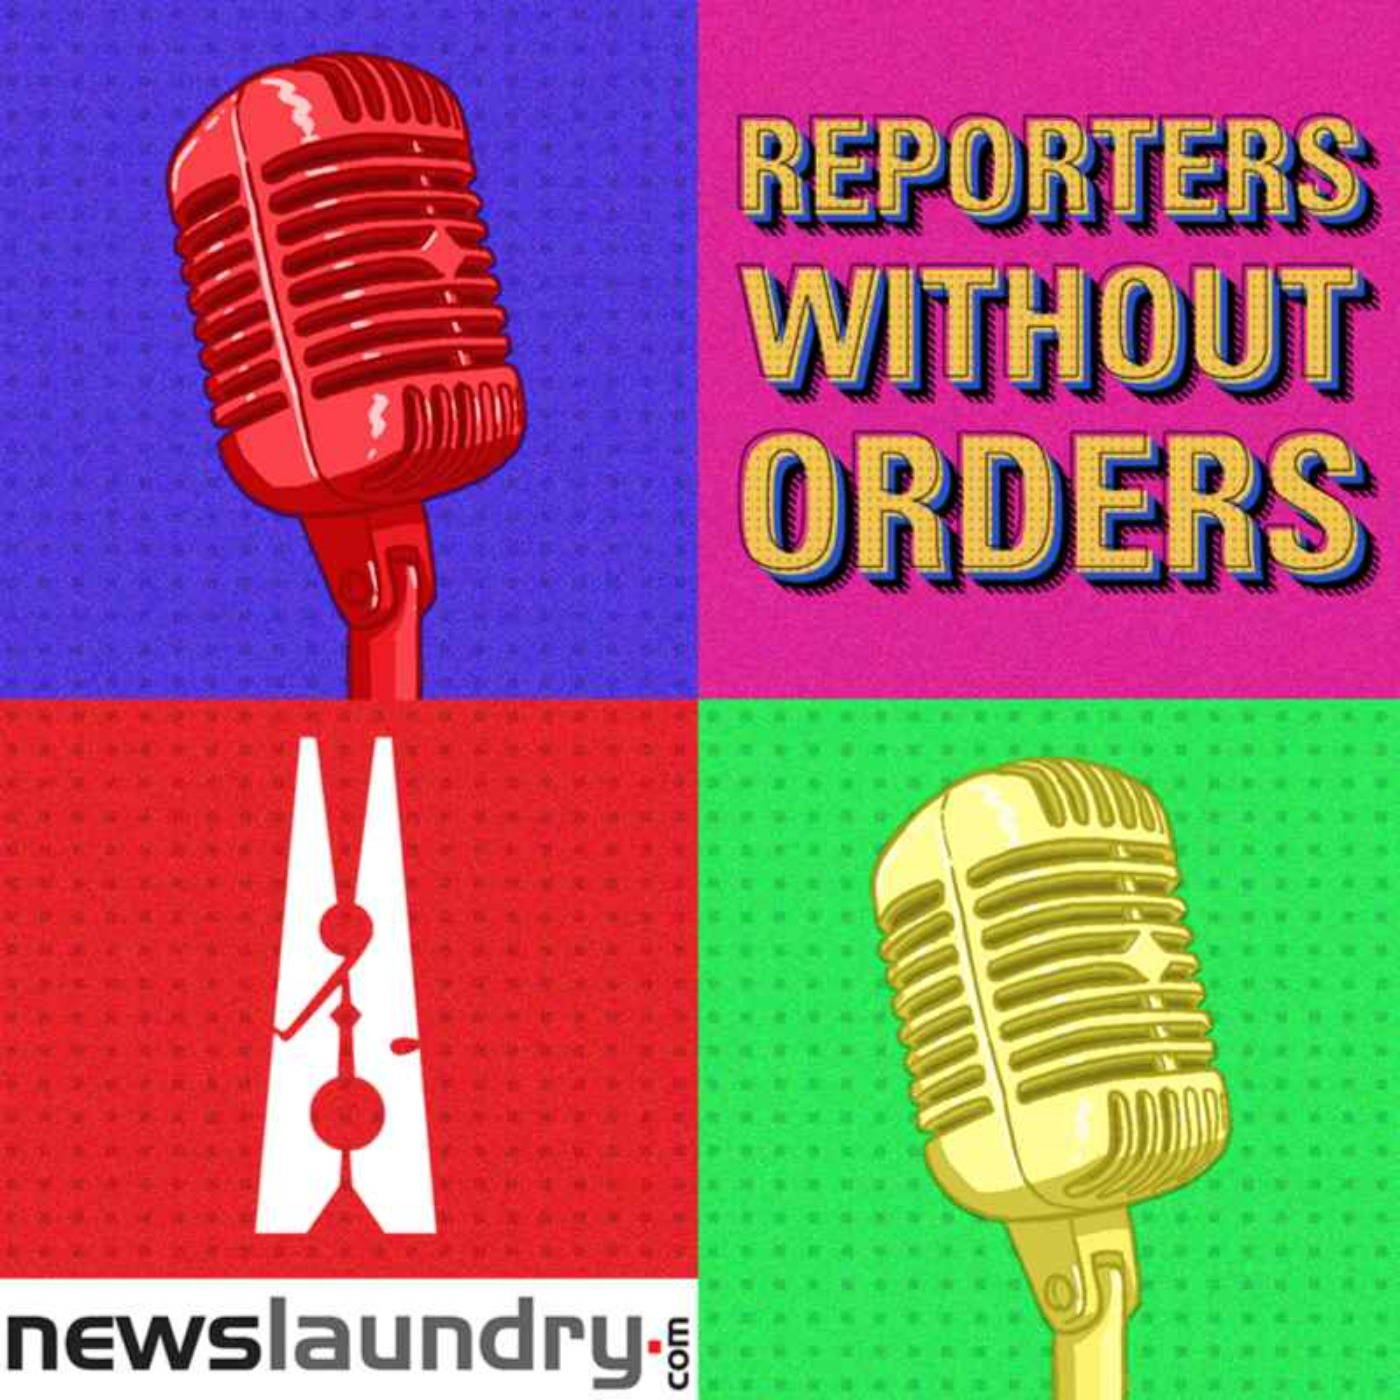 Reporters Without Orders Ep 144: Farmer protests